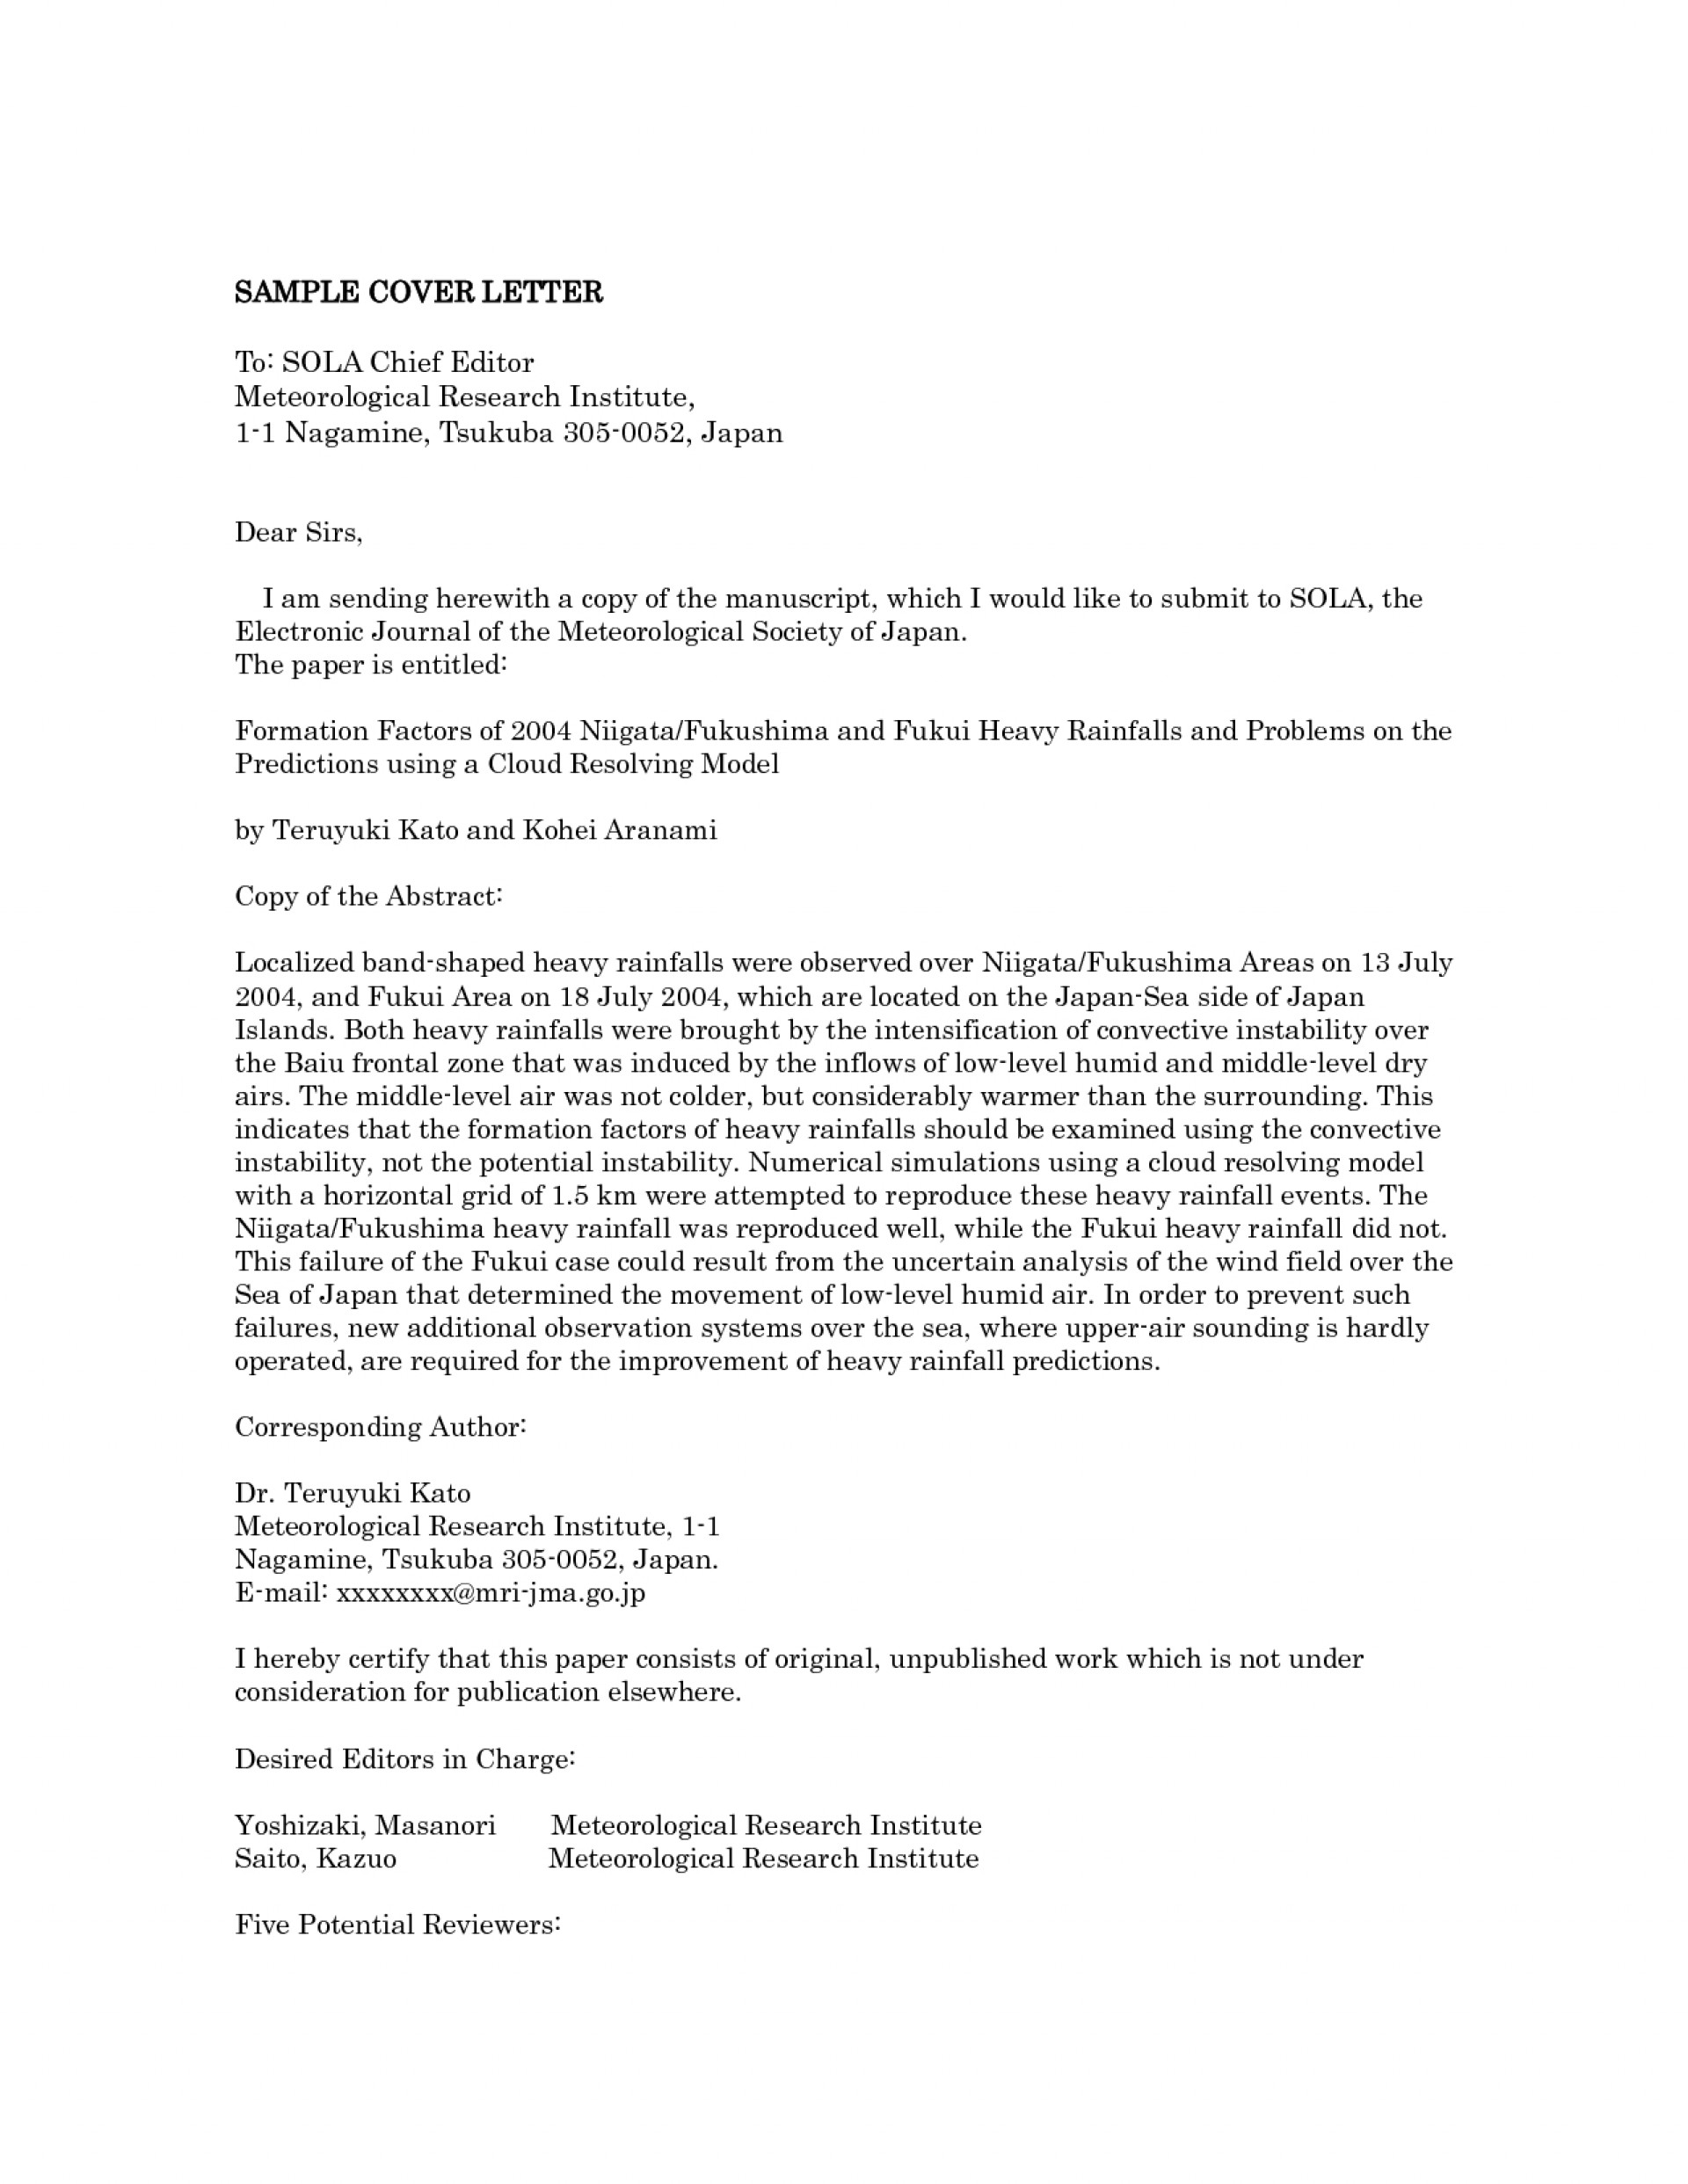 014 Research Paper Editor Cover Letter Breathtaking Free Editing Software On Text 1920